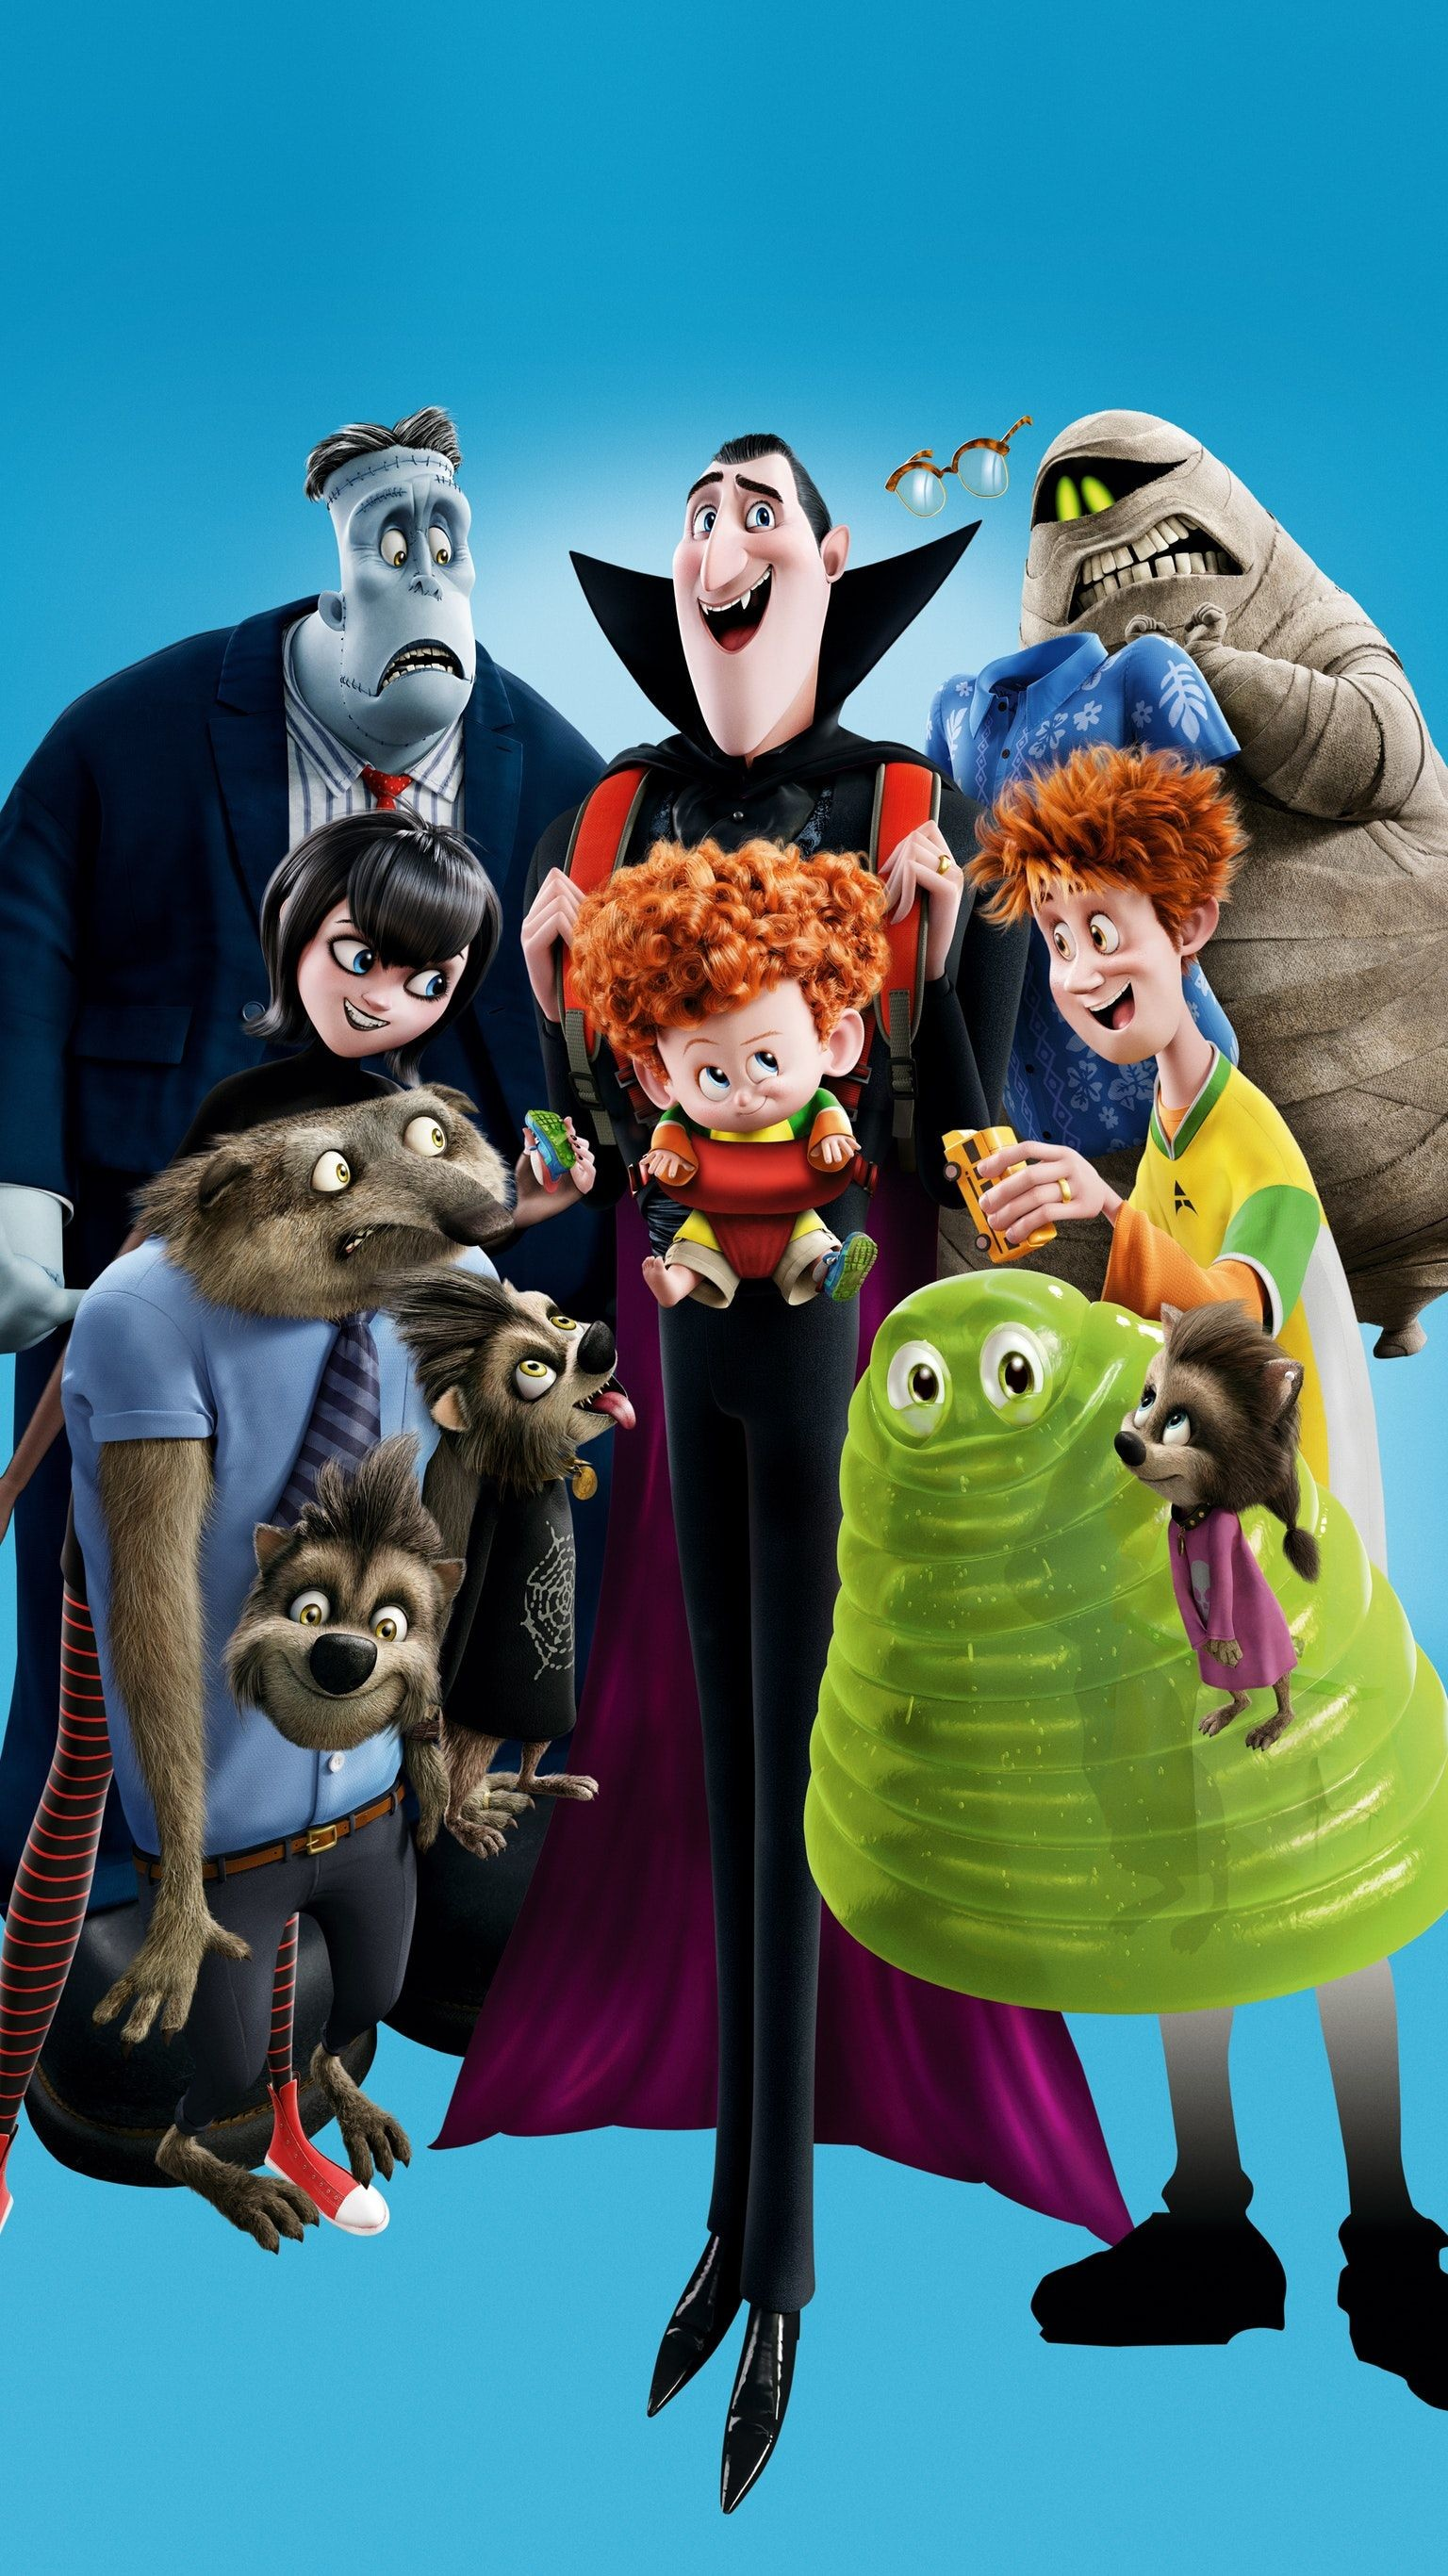 1536x2733 Hotel Transylvania 2, Movie Wallpapers, Phone Backgrounds, Movies, Food  Cakes, Wallpaper